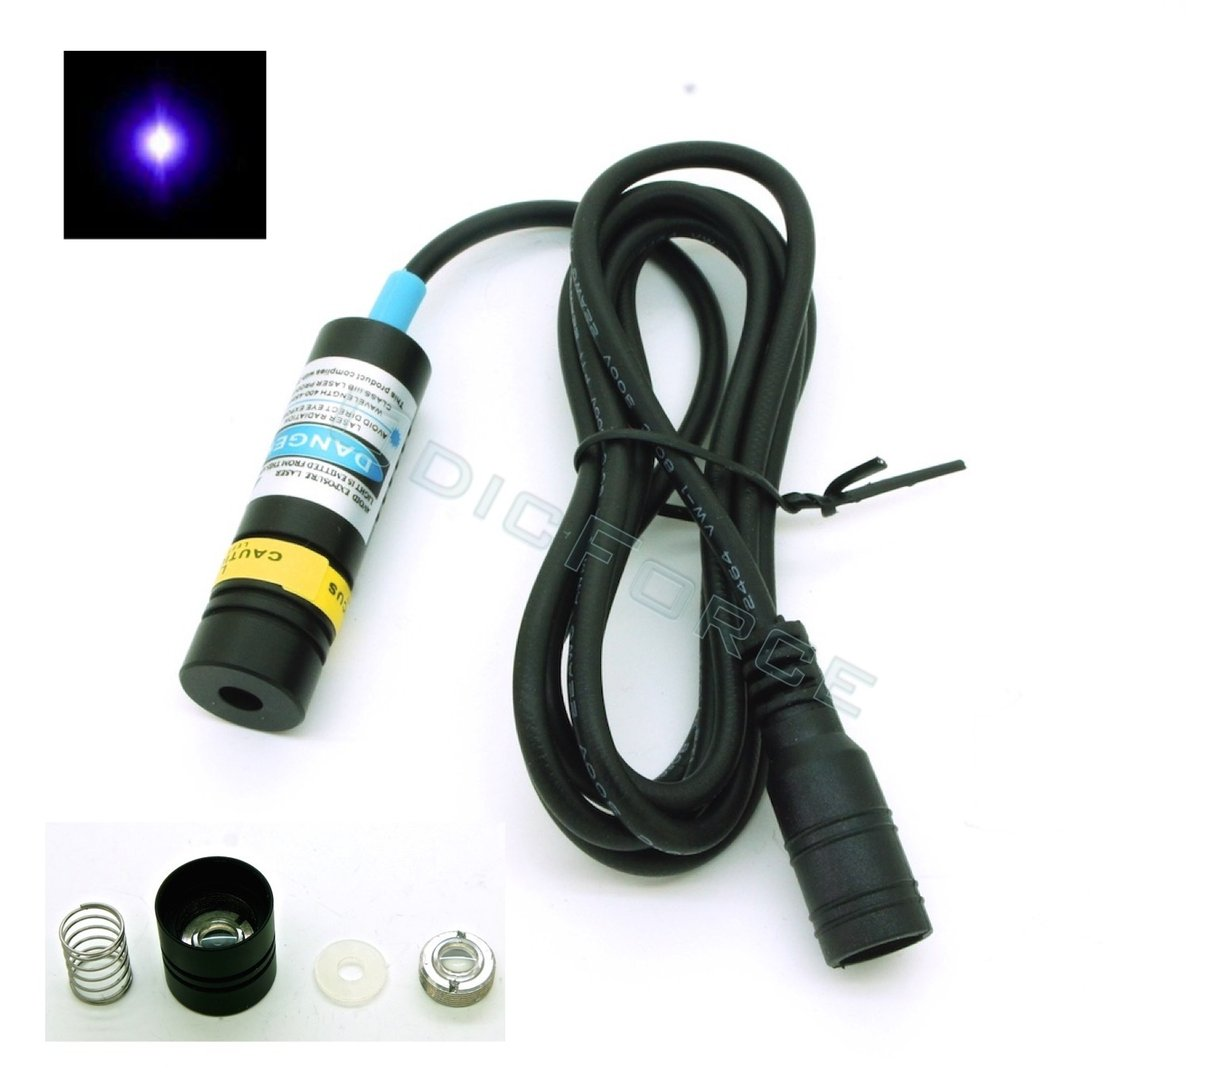 50mW 405nm Adjustable Focus Blue-violet Dot Laser Module  (14.5mm)